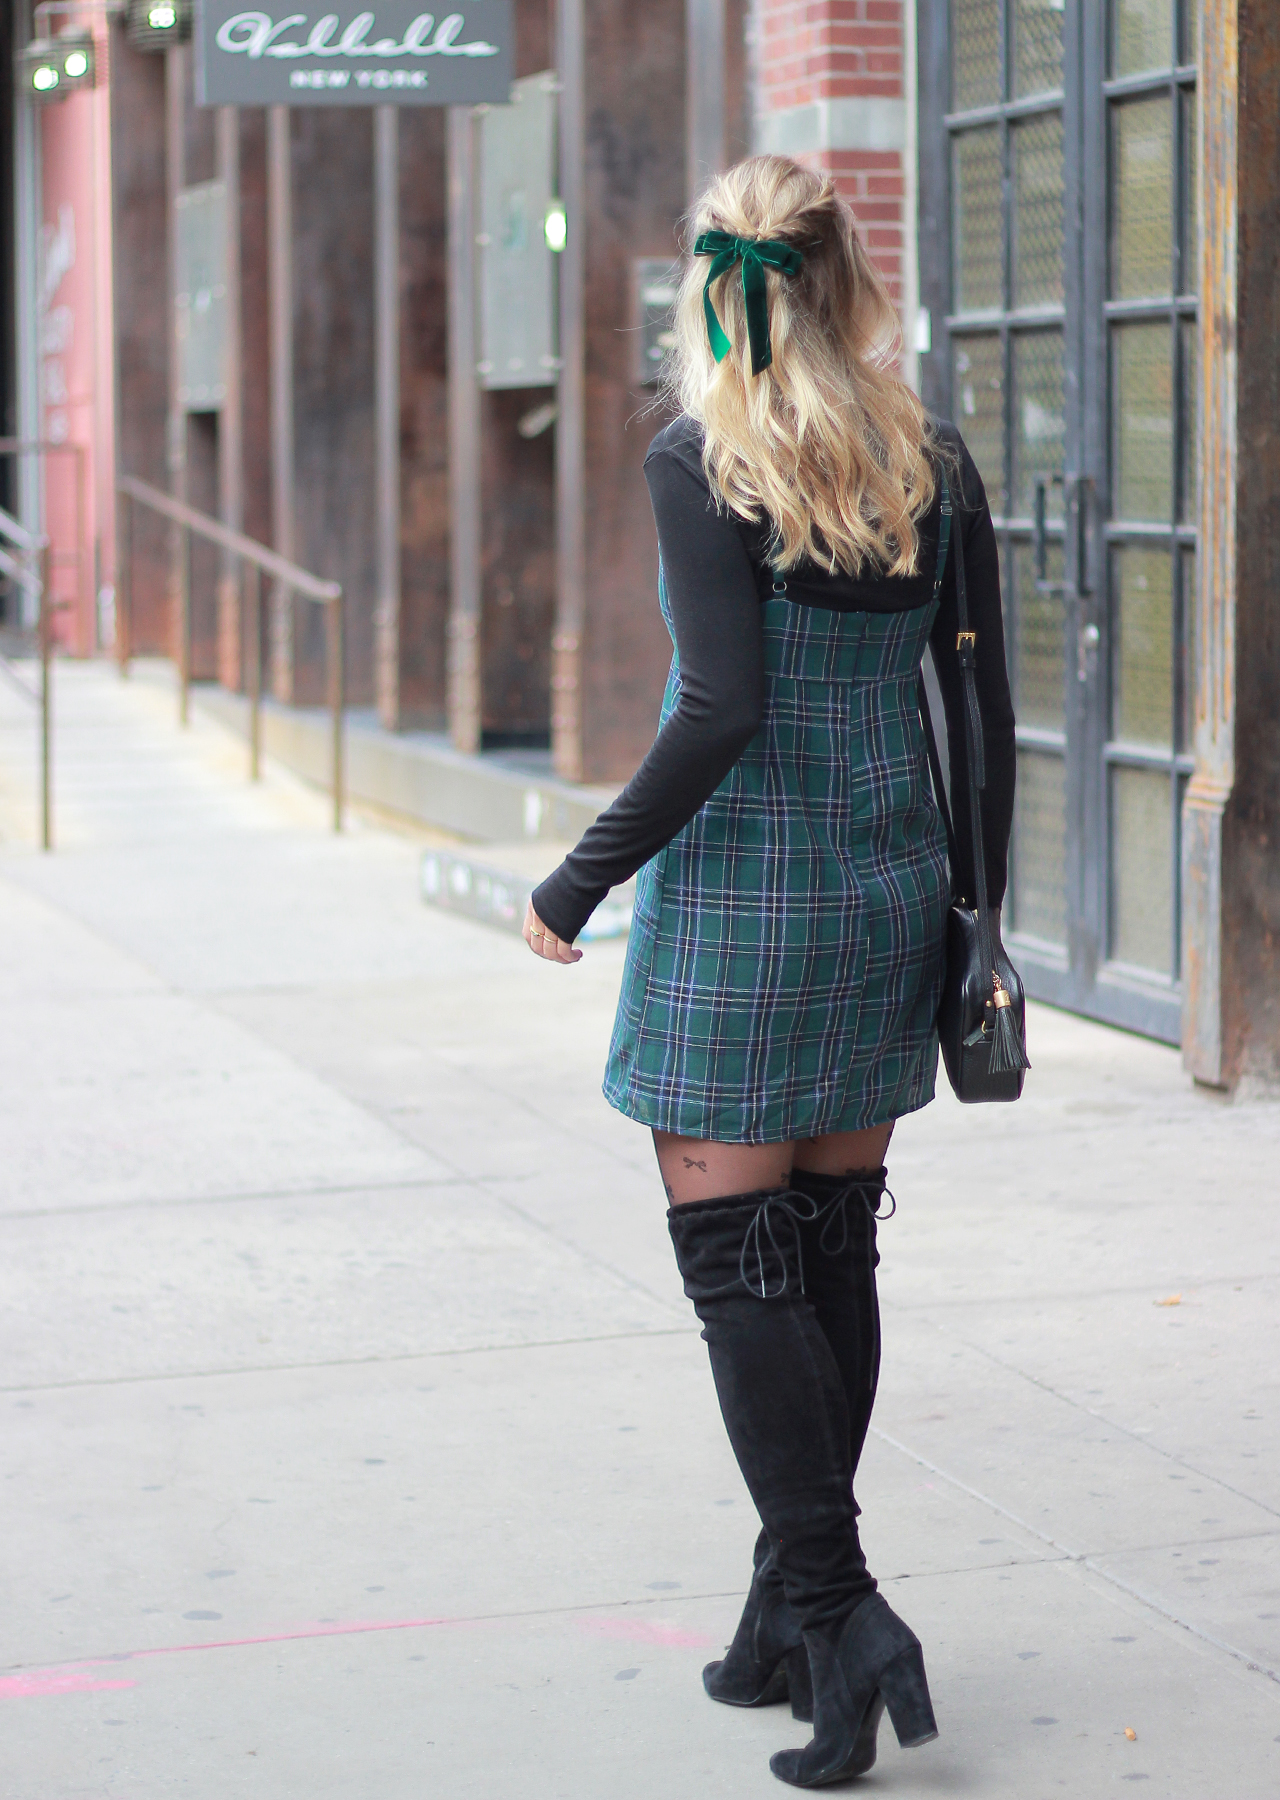 The Steele Maiden: Cute Holiday Style - Plaid Mini Dress, Bow Tights and OTK BootsThe Steele Maiden: Cute Holiday Style - Plaid Mini Dress, Bow Tights and OTK Boots